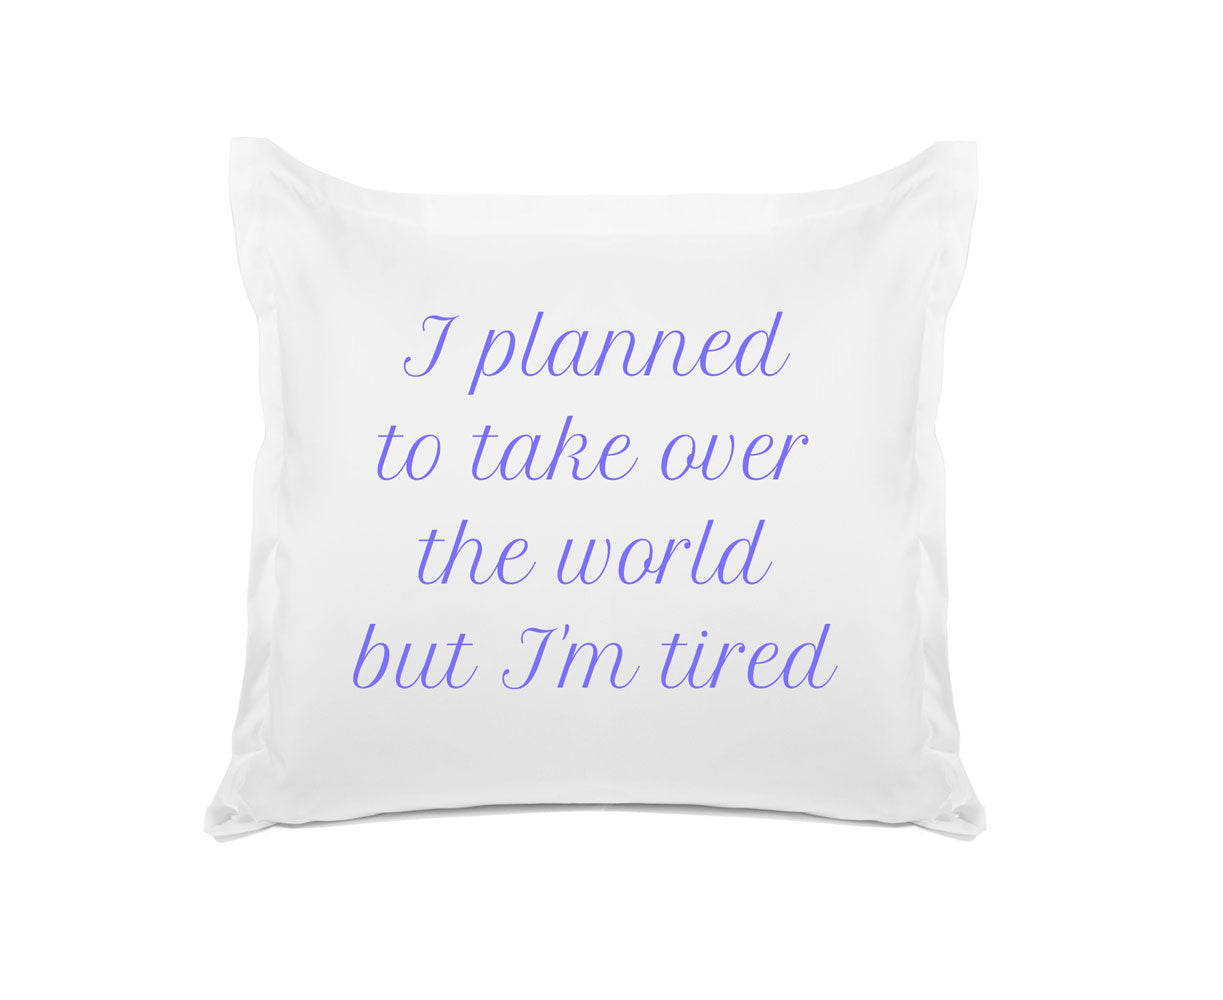 I Planned To Take Over The World But I'M Tired - Expressions Pillowcase Collection